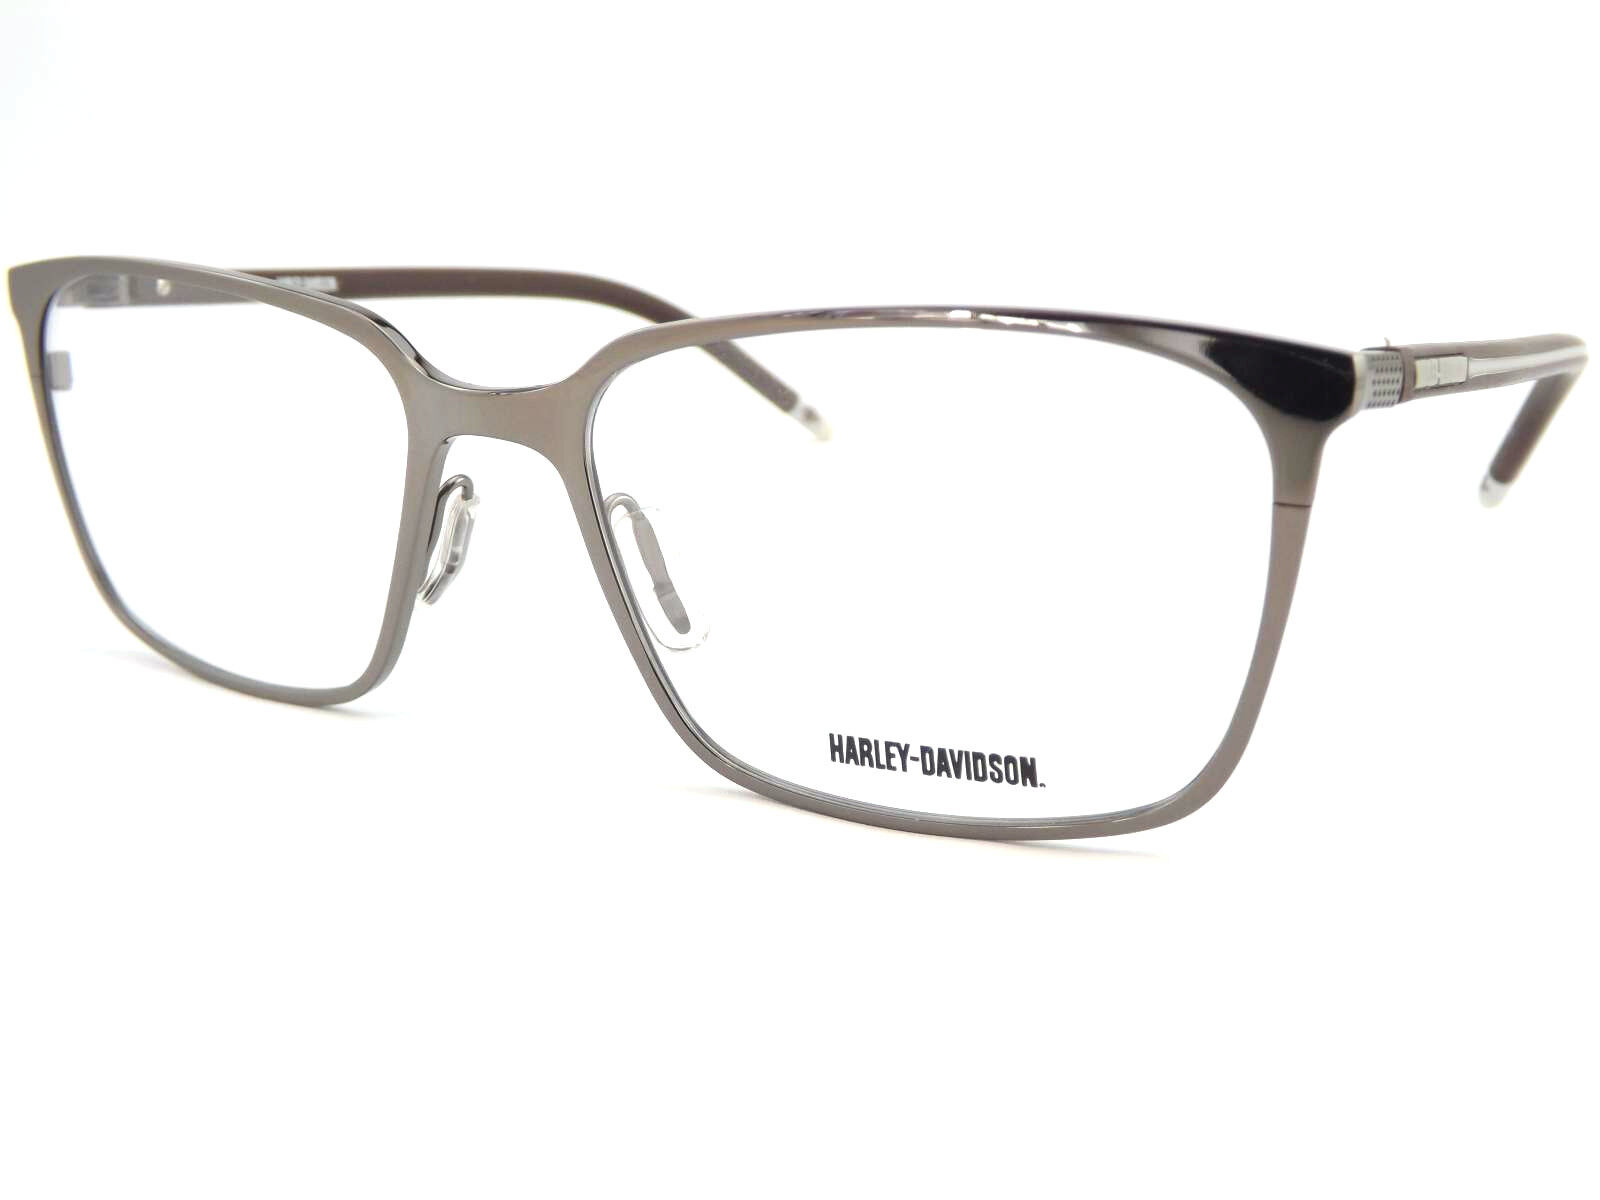 f44c8277e34e HARLEY DAVIDSON Optical Glasses Spectacle RX Frame Silver   Brown ...